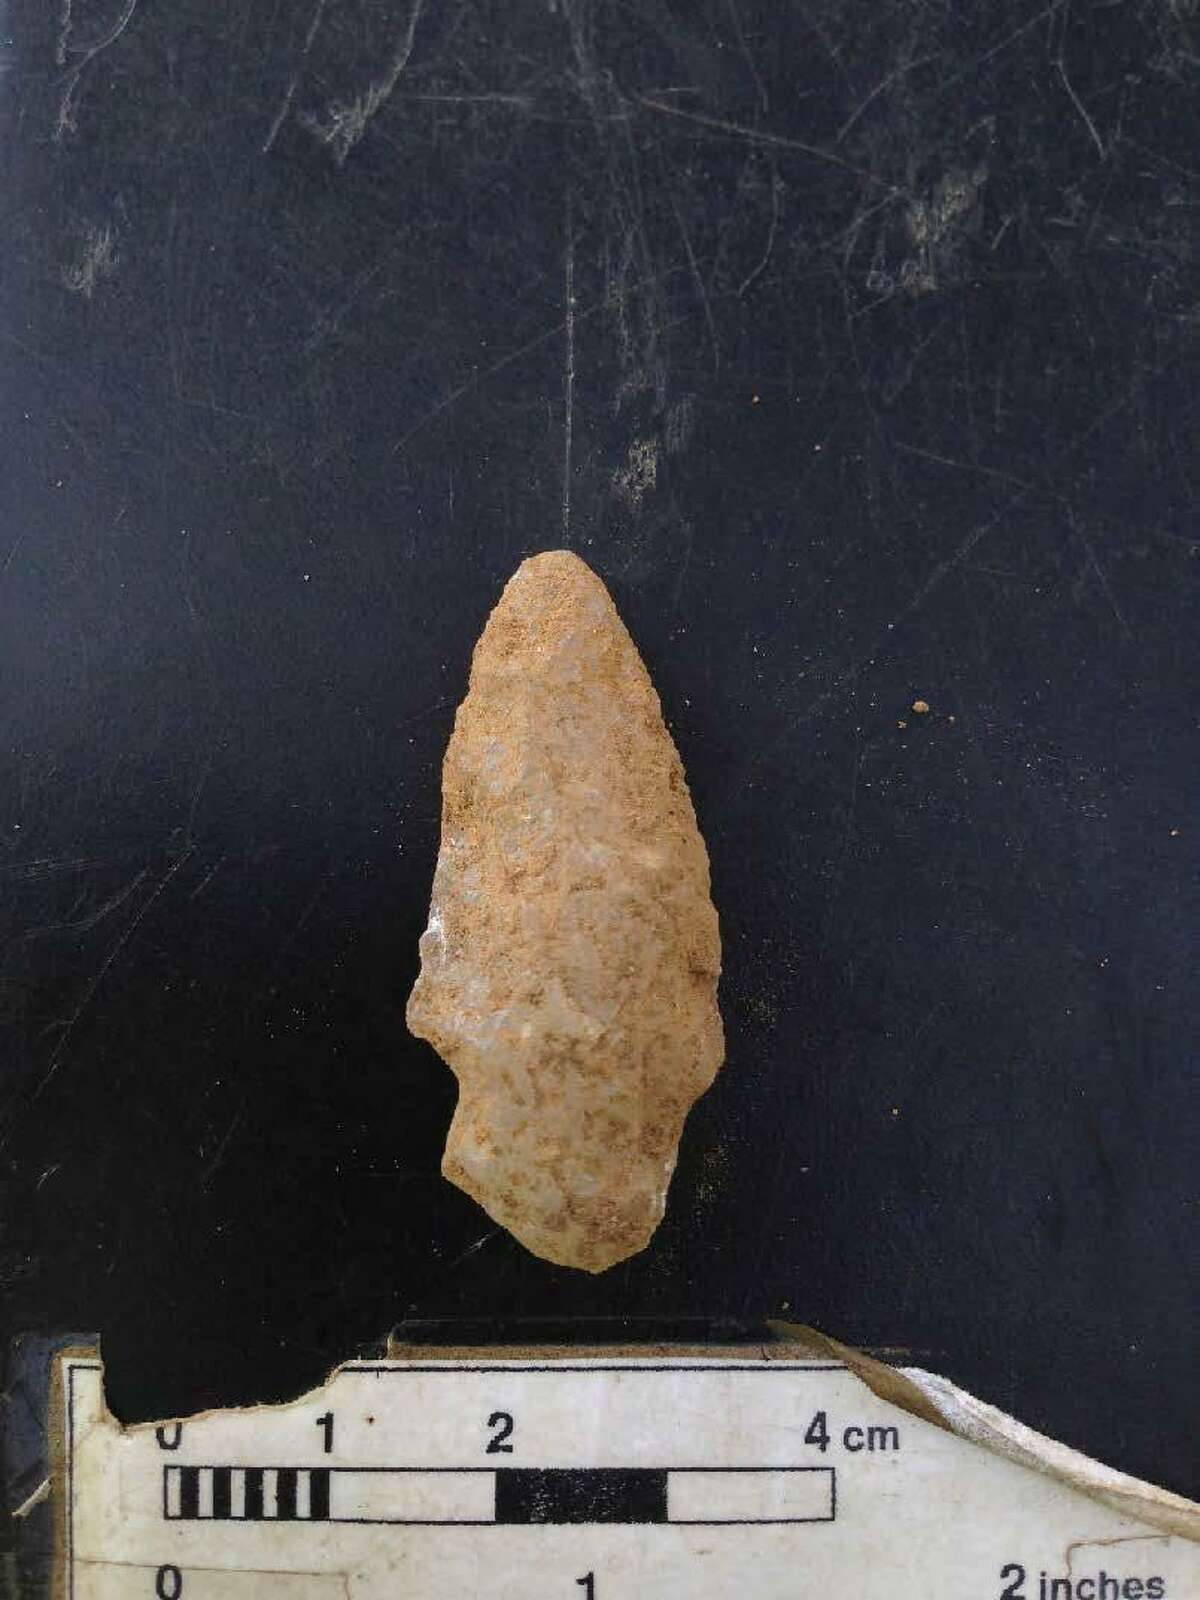 A Lamoka stone point unearthed at the Walk Bridge construction site in East Norwalk.